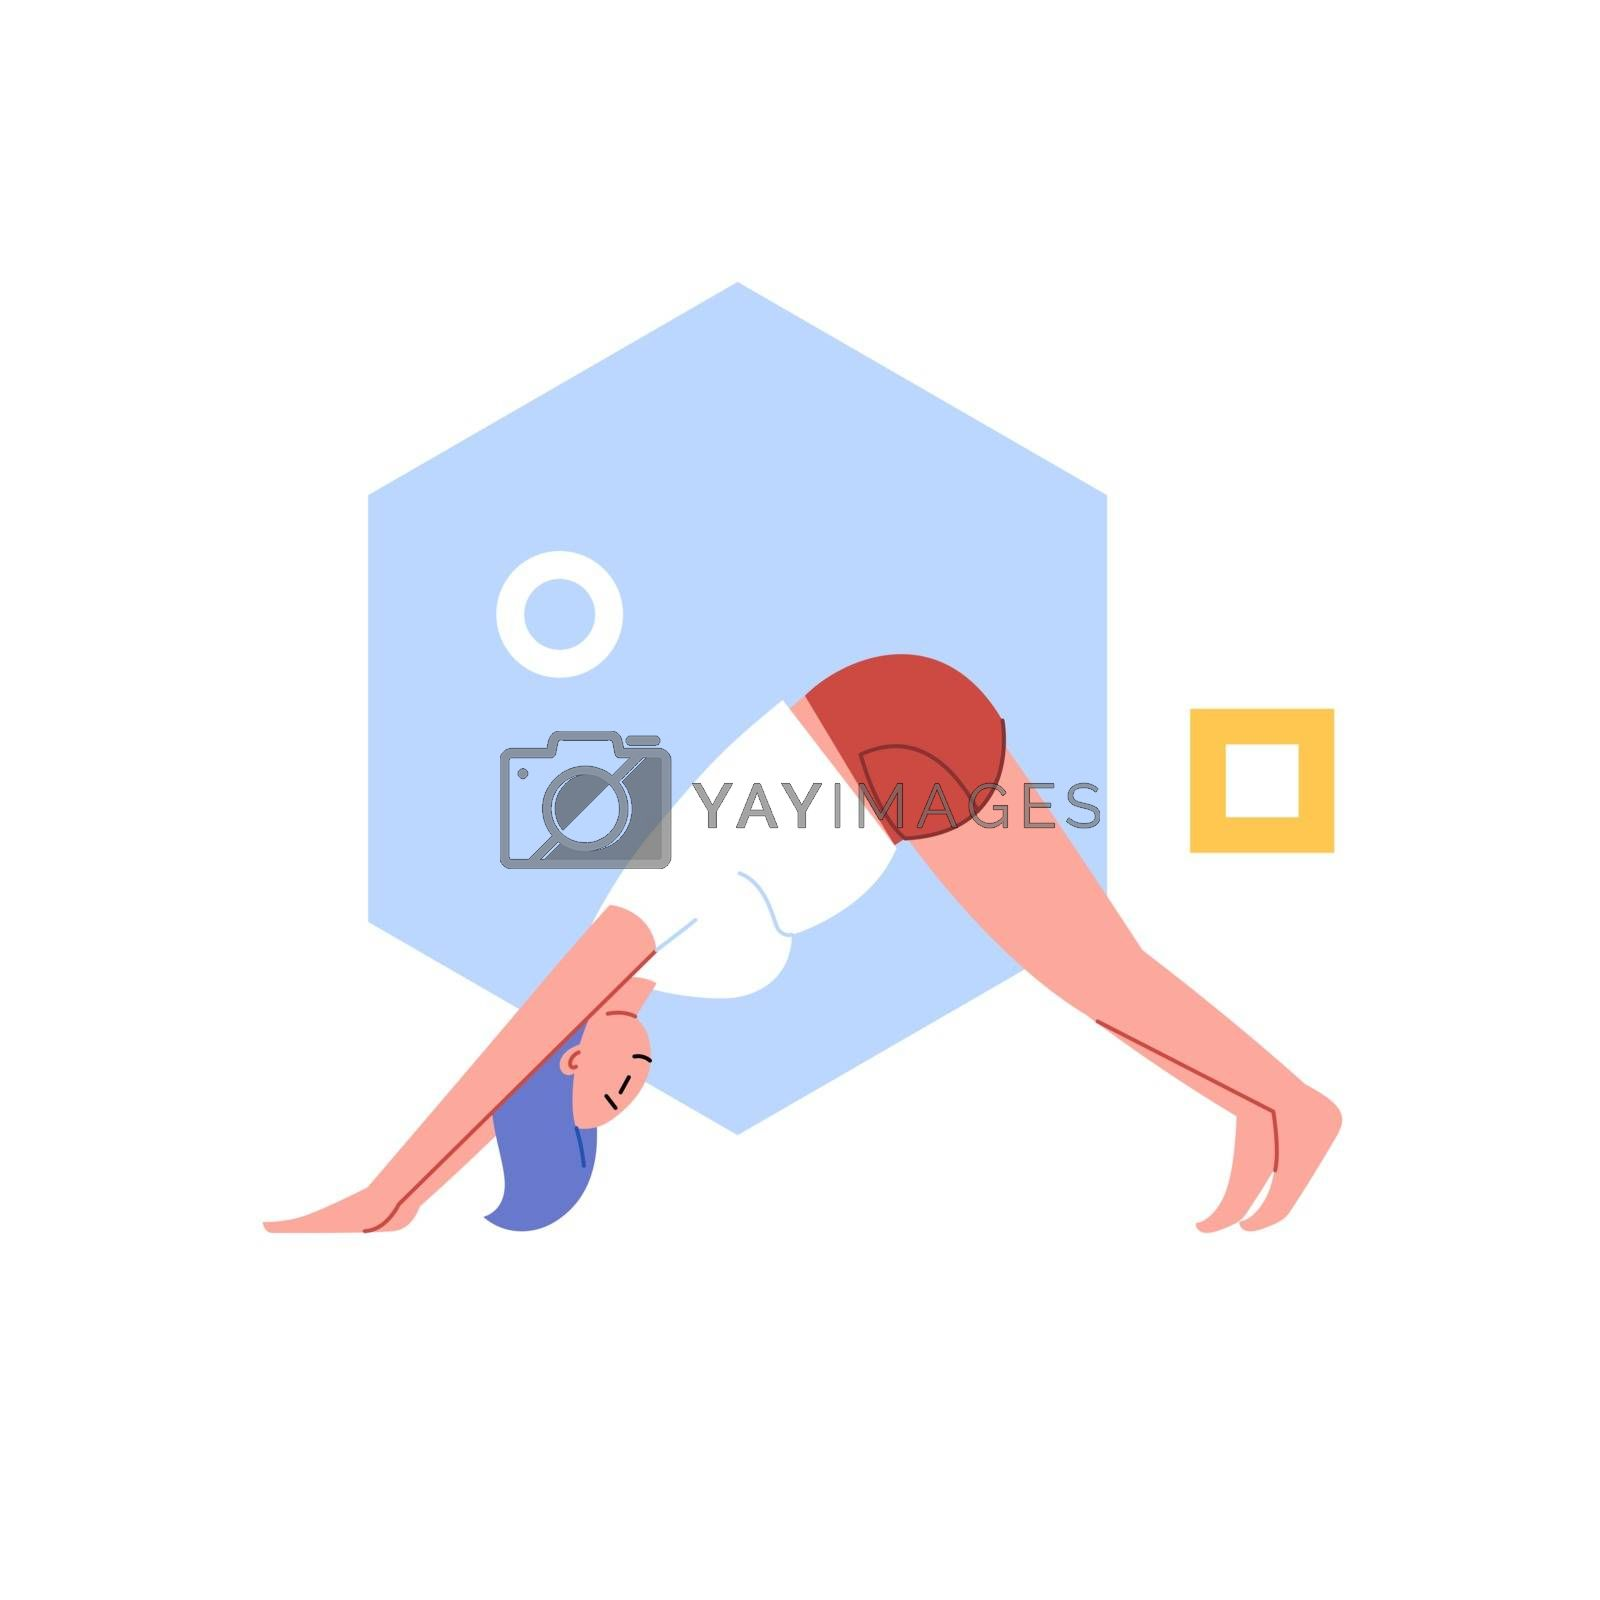 Flat and line illustration of a person practicing yoga with an abstract geometric background